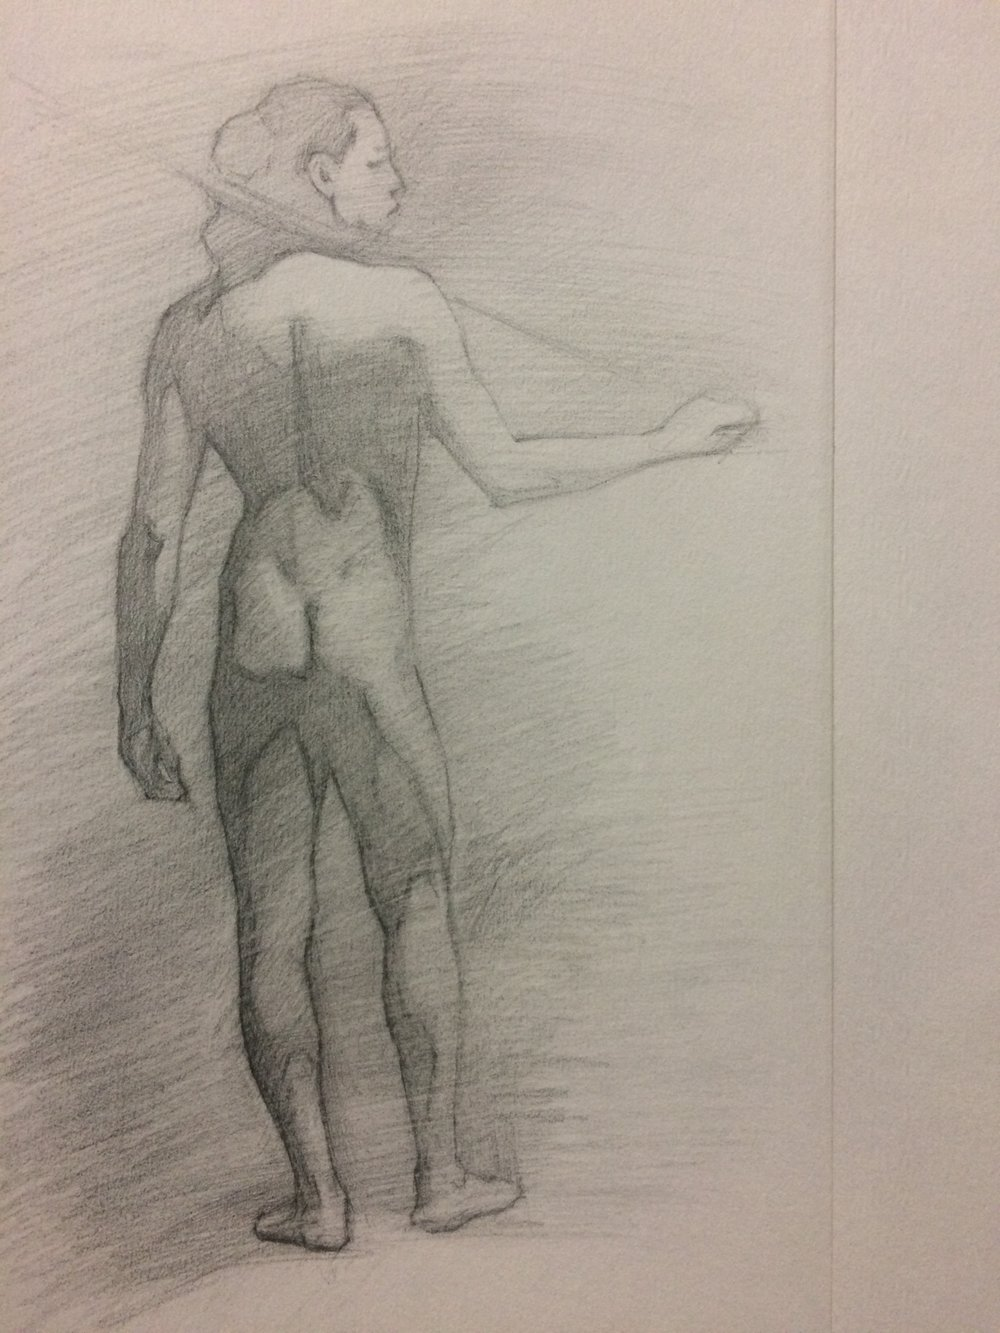 Pencil sketch of the last long pose